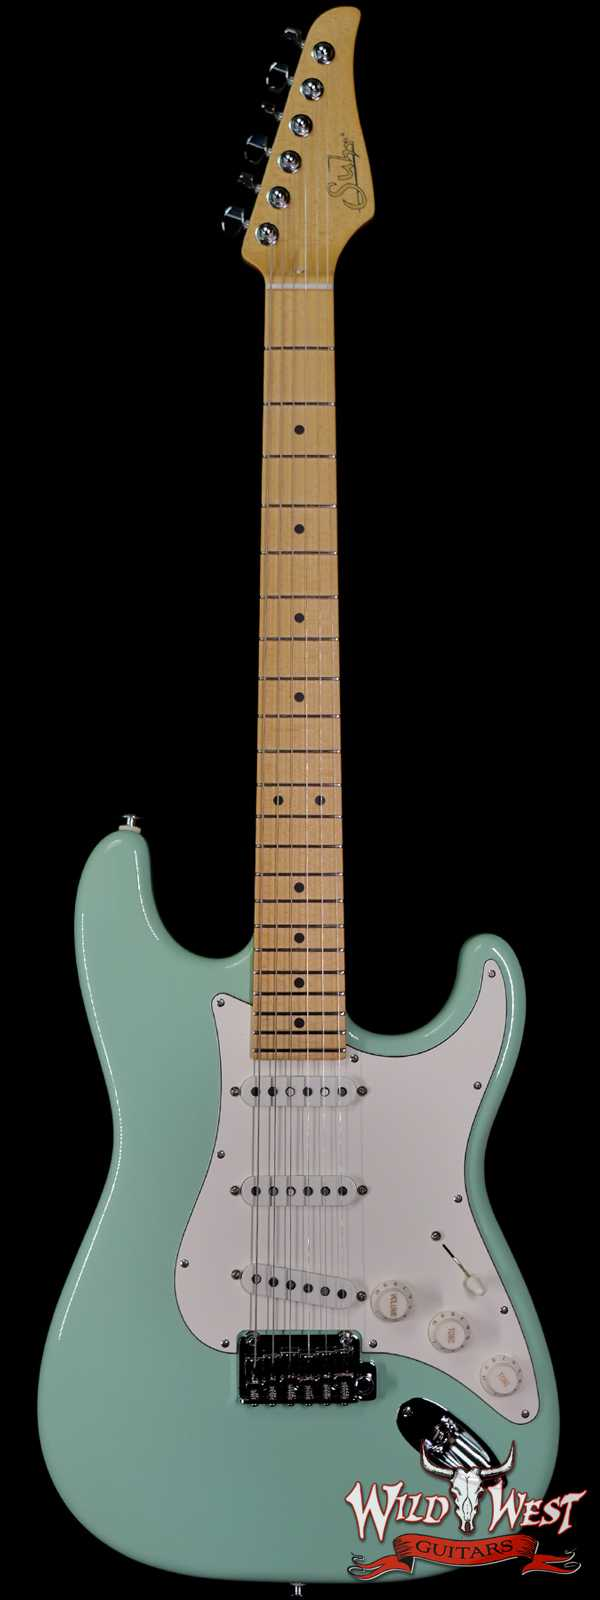 Suhr Classic S SSS Quater-Sawn Maple Neck and Fingerboard Surf Green